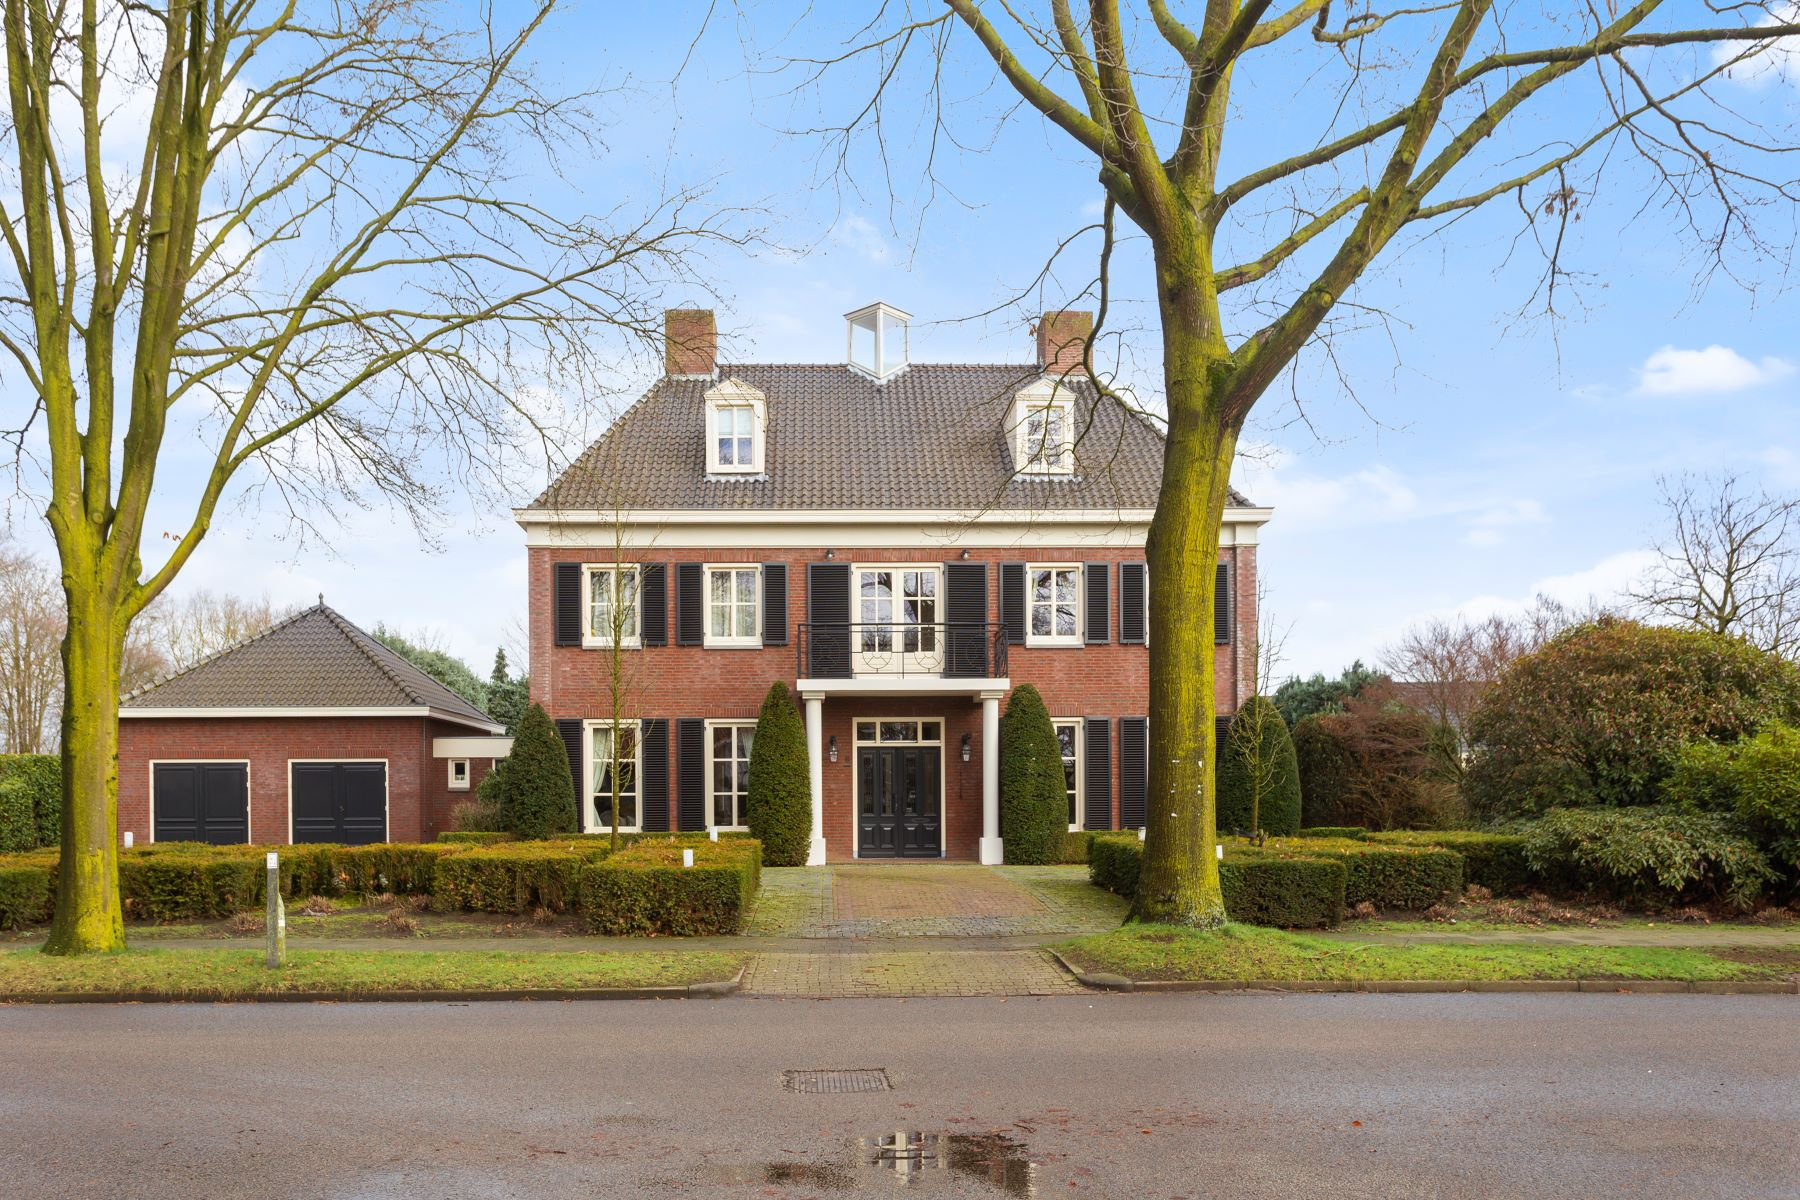 Single Family Homes for Sale at ARCHITECTURALLY BUILT MANSION Schooteindseweg 6 Vlierden, North Brabant 5756 BD Netherlands